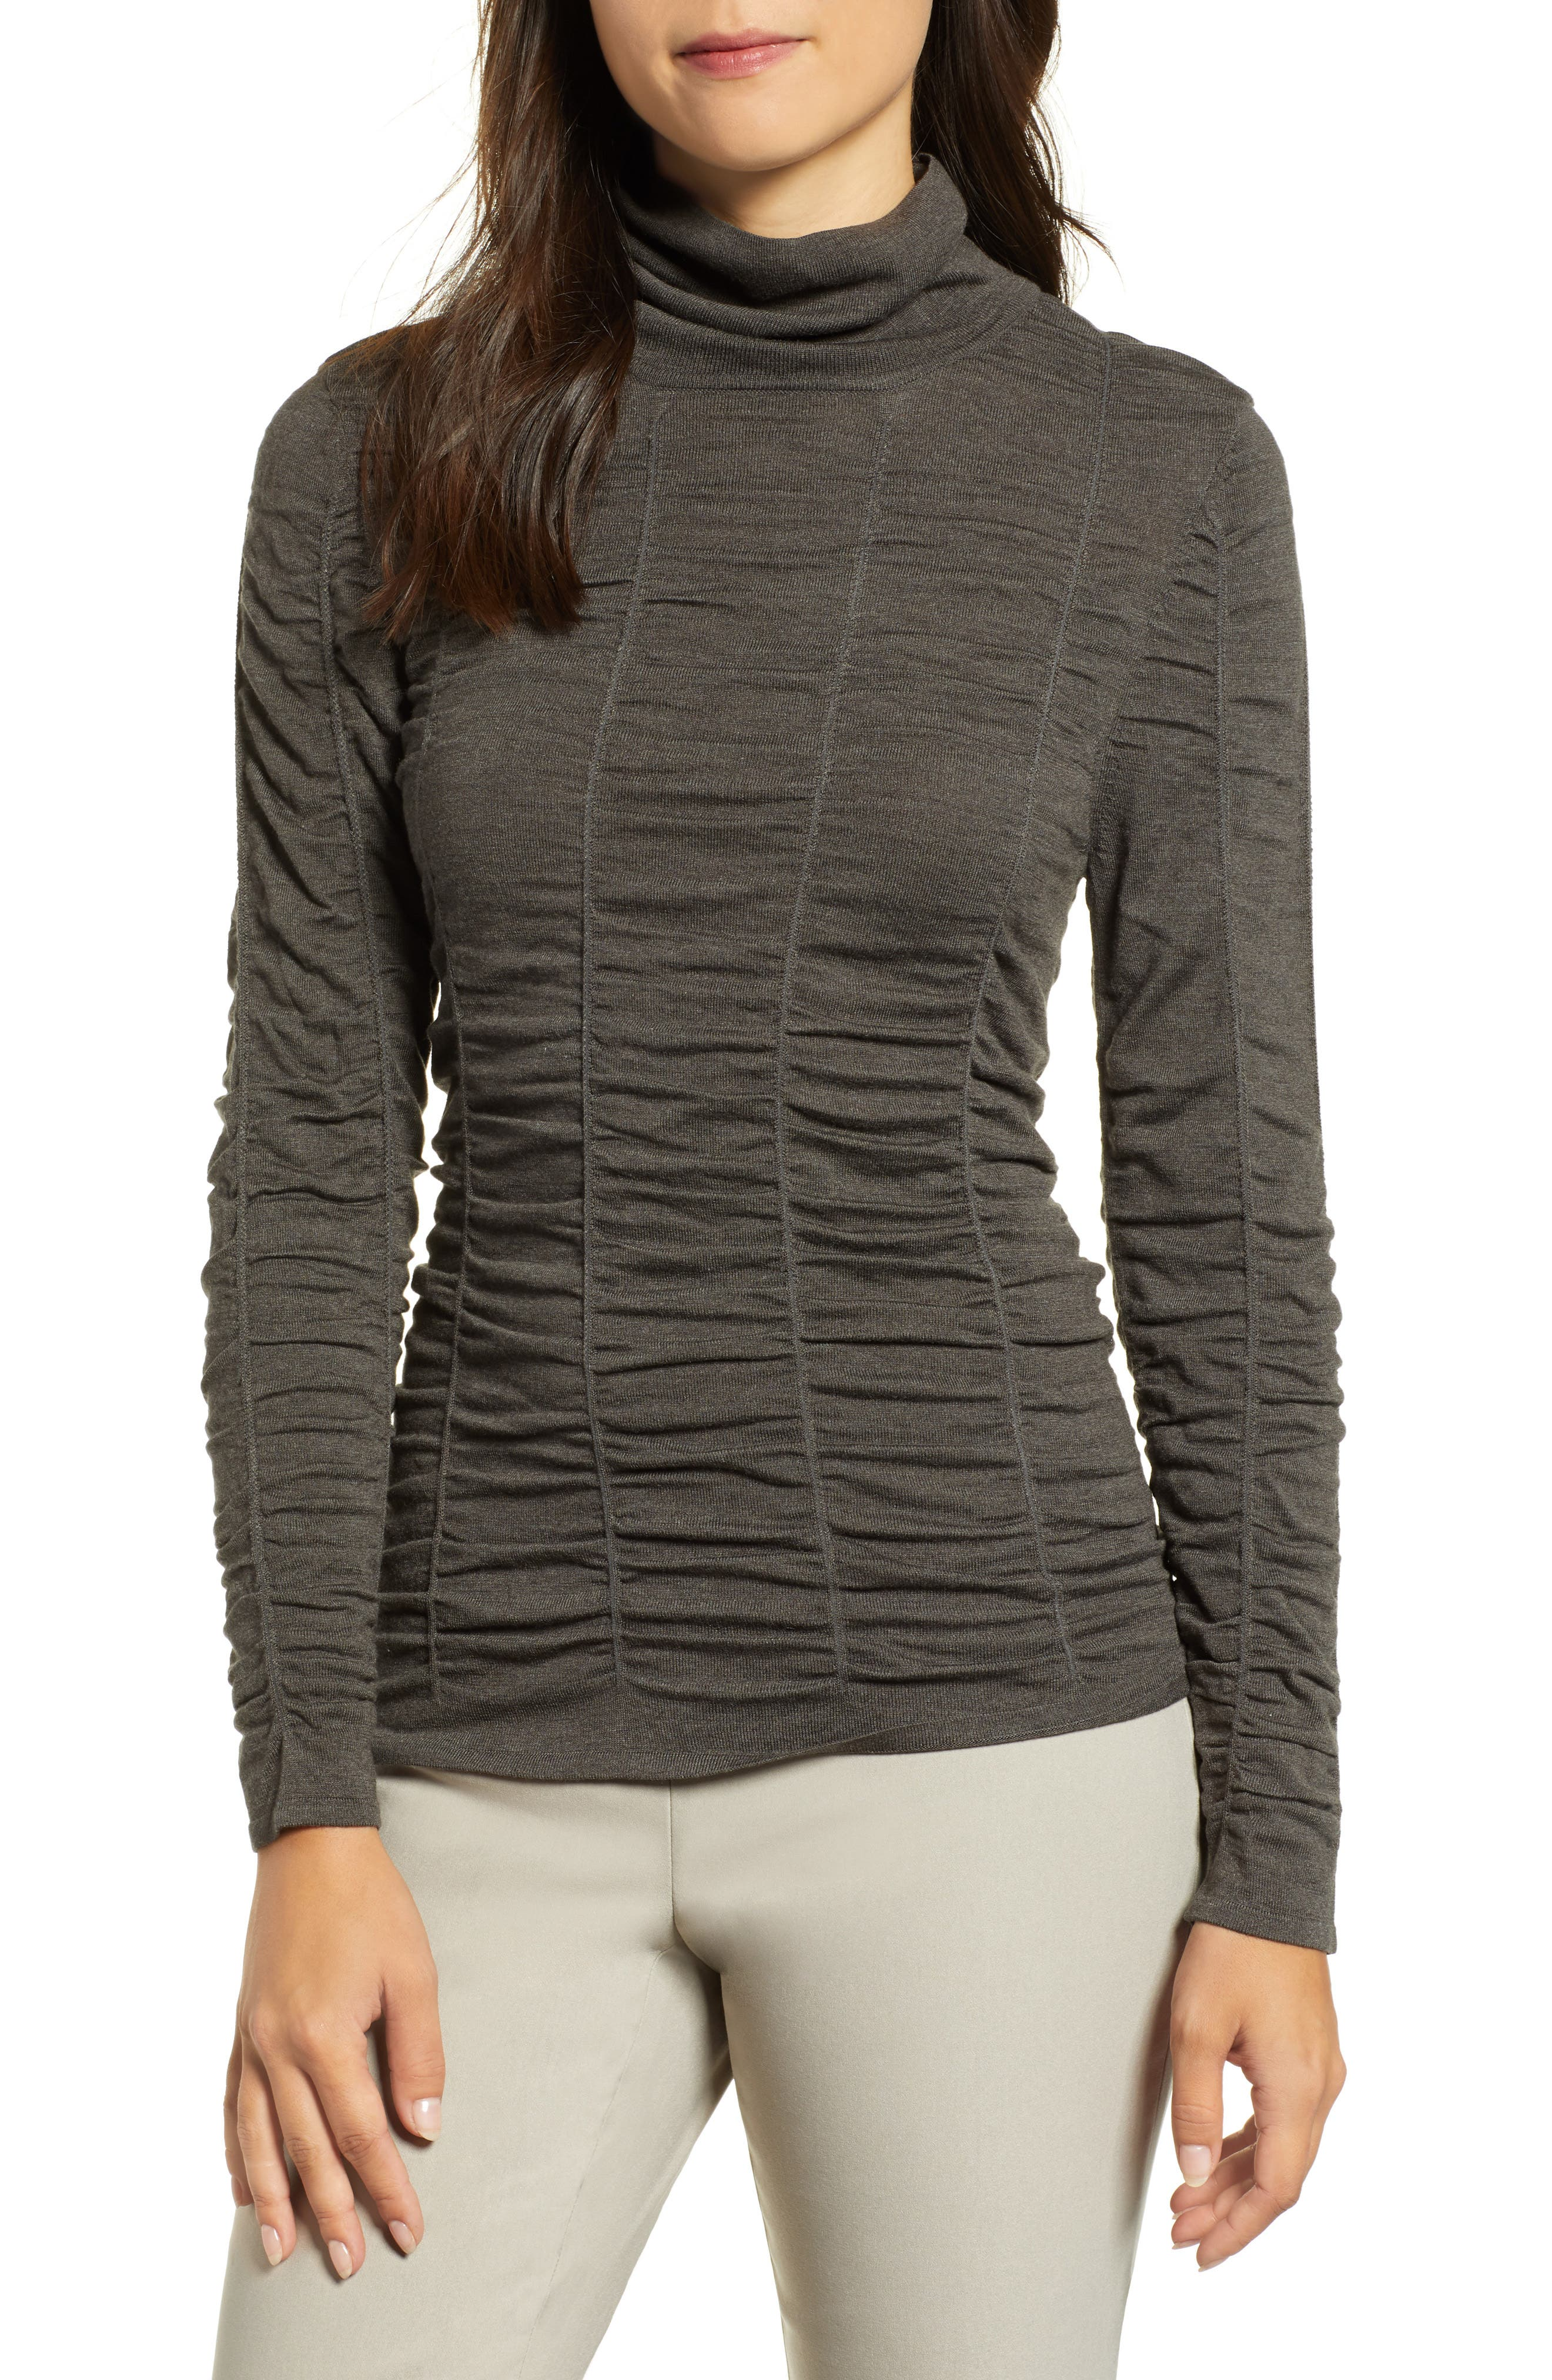 NIC + ZOE Turtleneck Long-Sleeve Scrunched-Up Top in Graphite